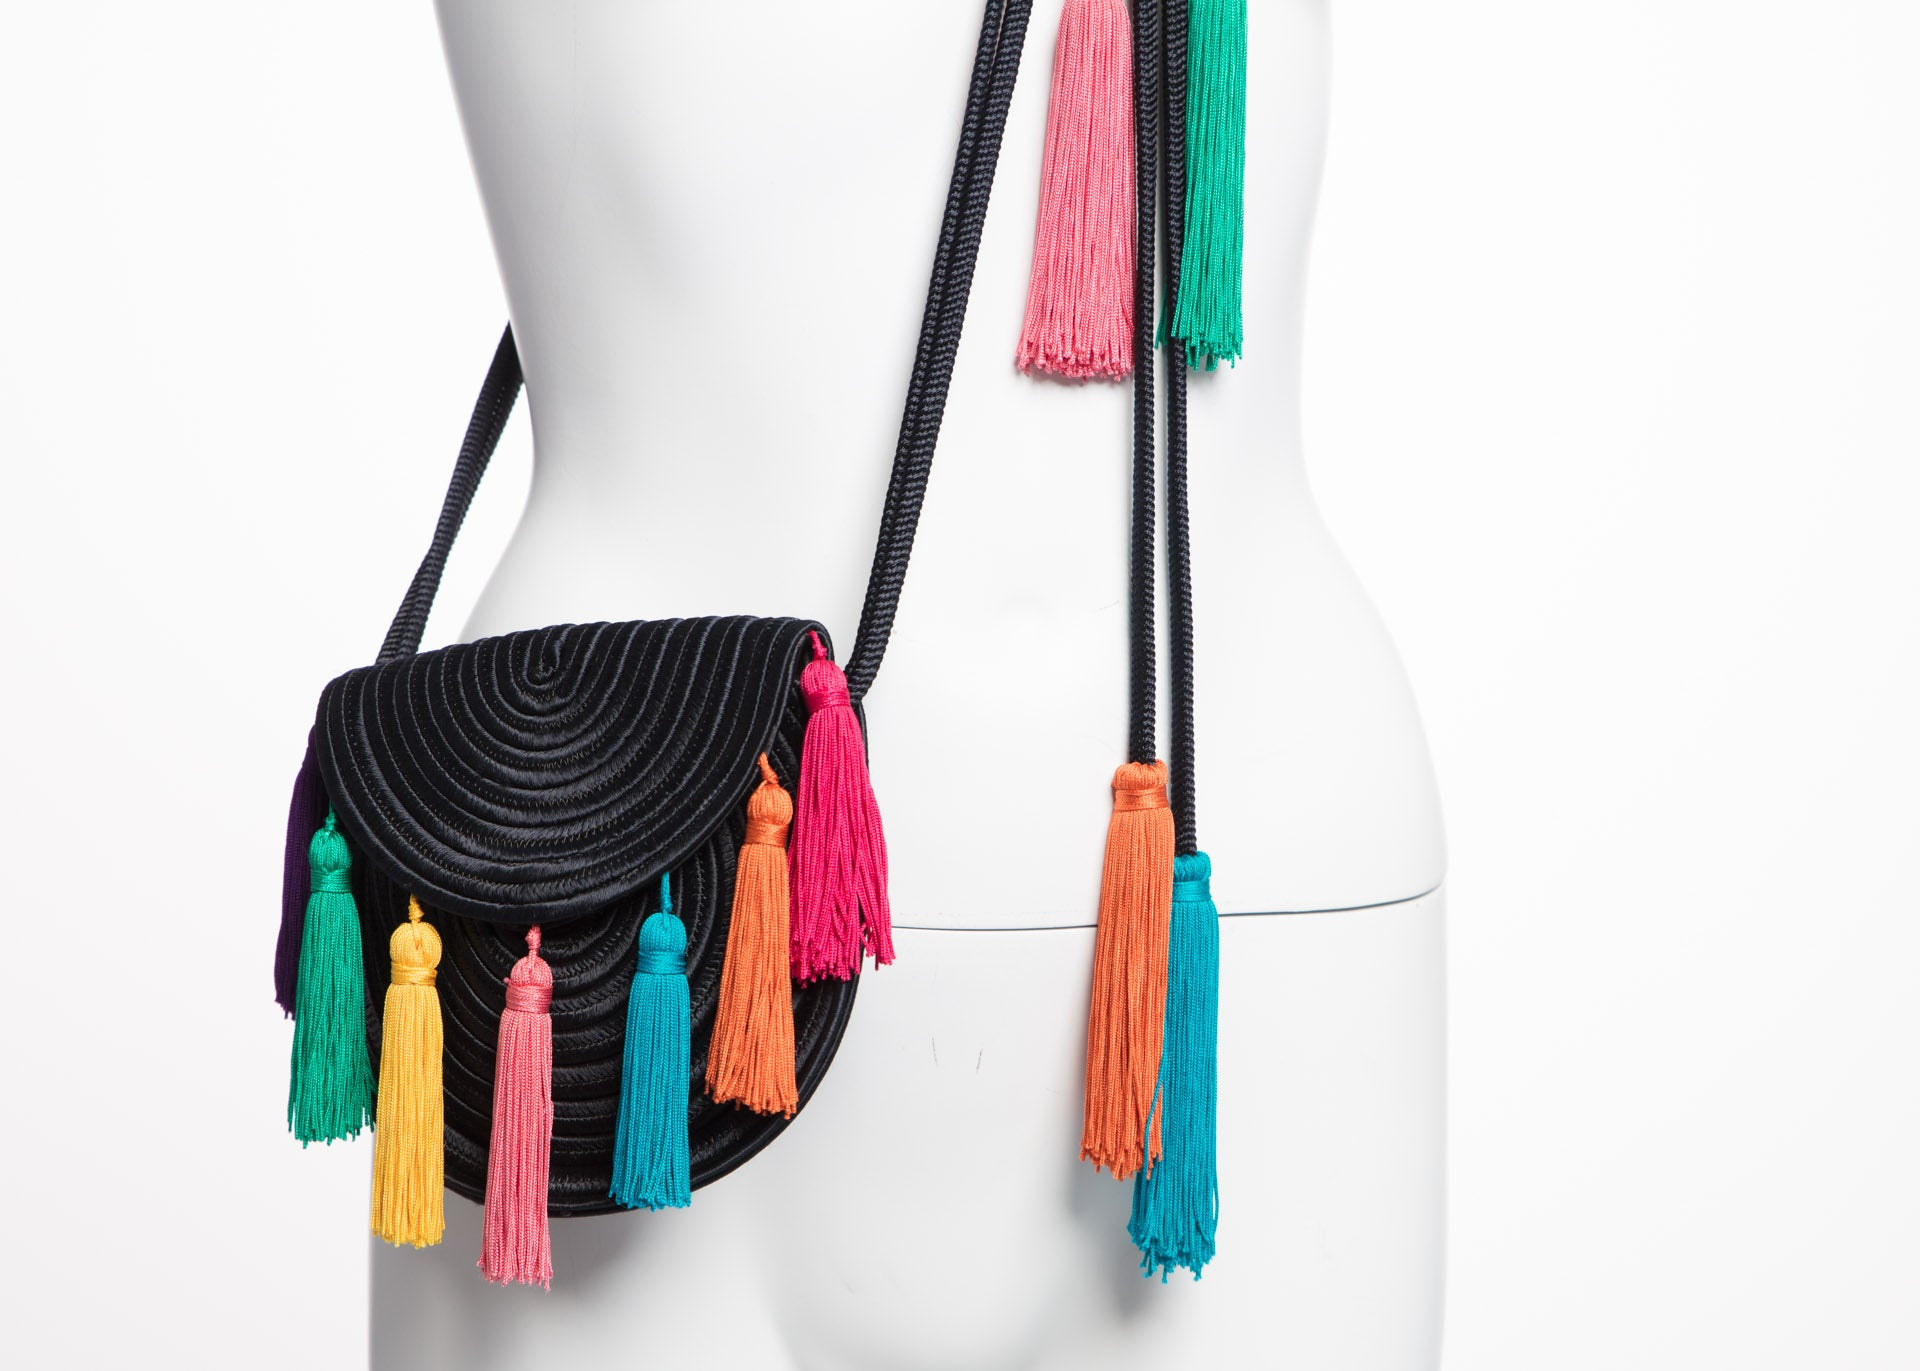 32d9f4e6d76a 1990s Yves Saint Laurent Black Passementerie Tassel Shoulder Belt Bag YSL  at 1stdibs